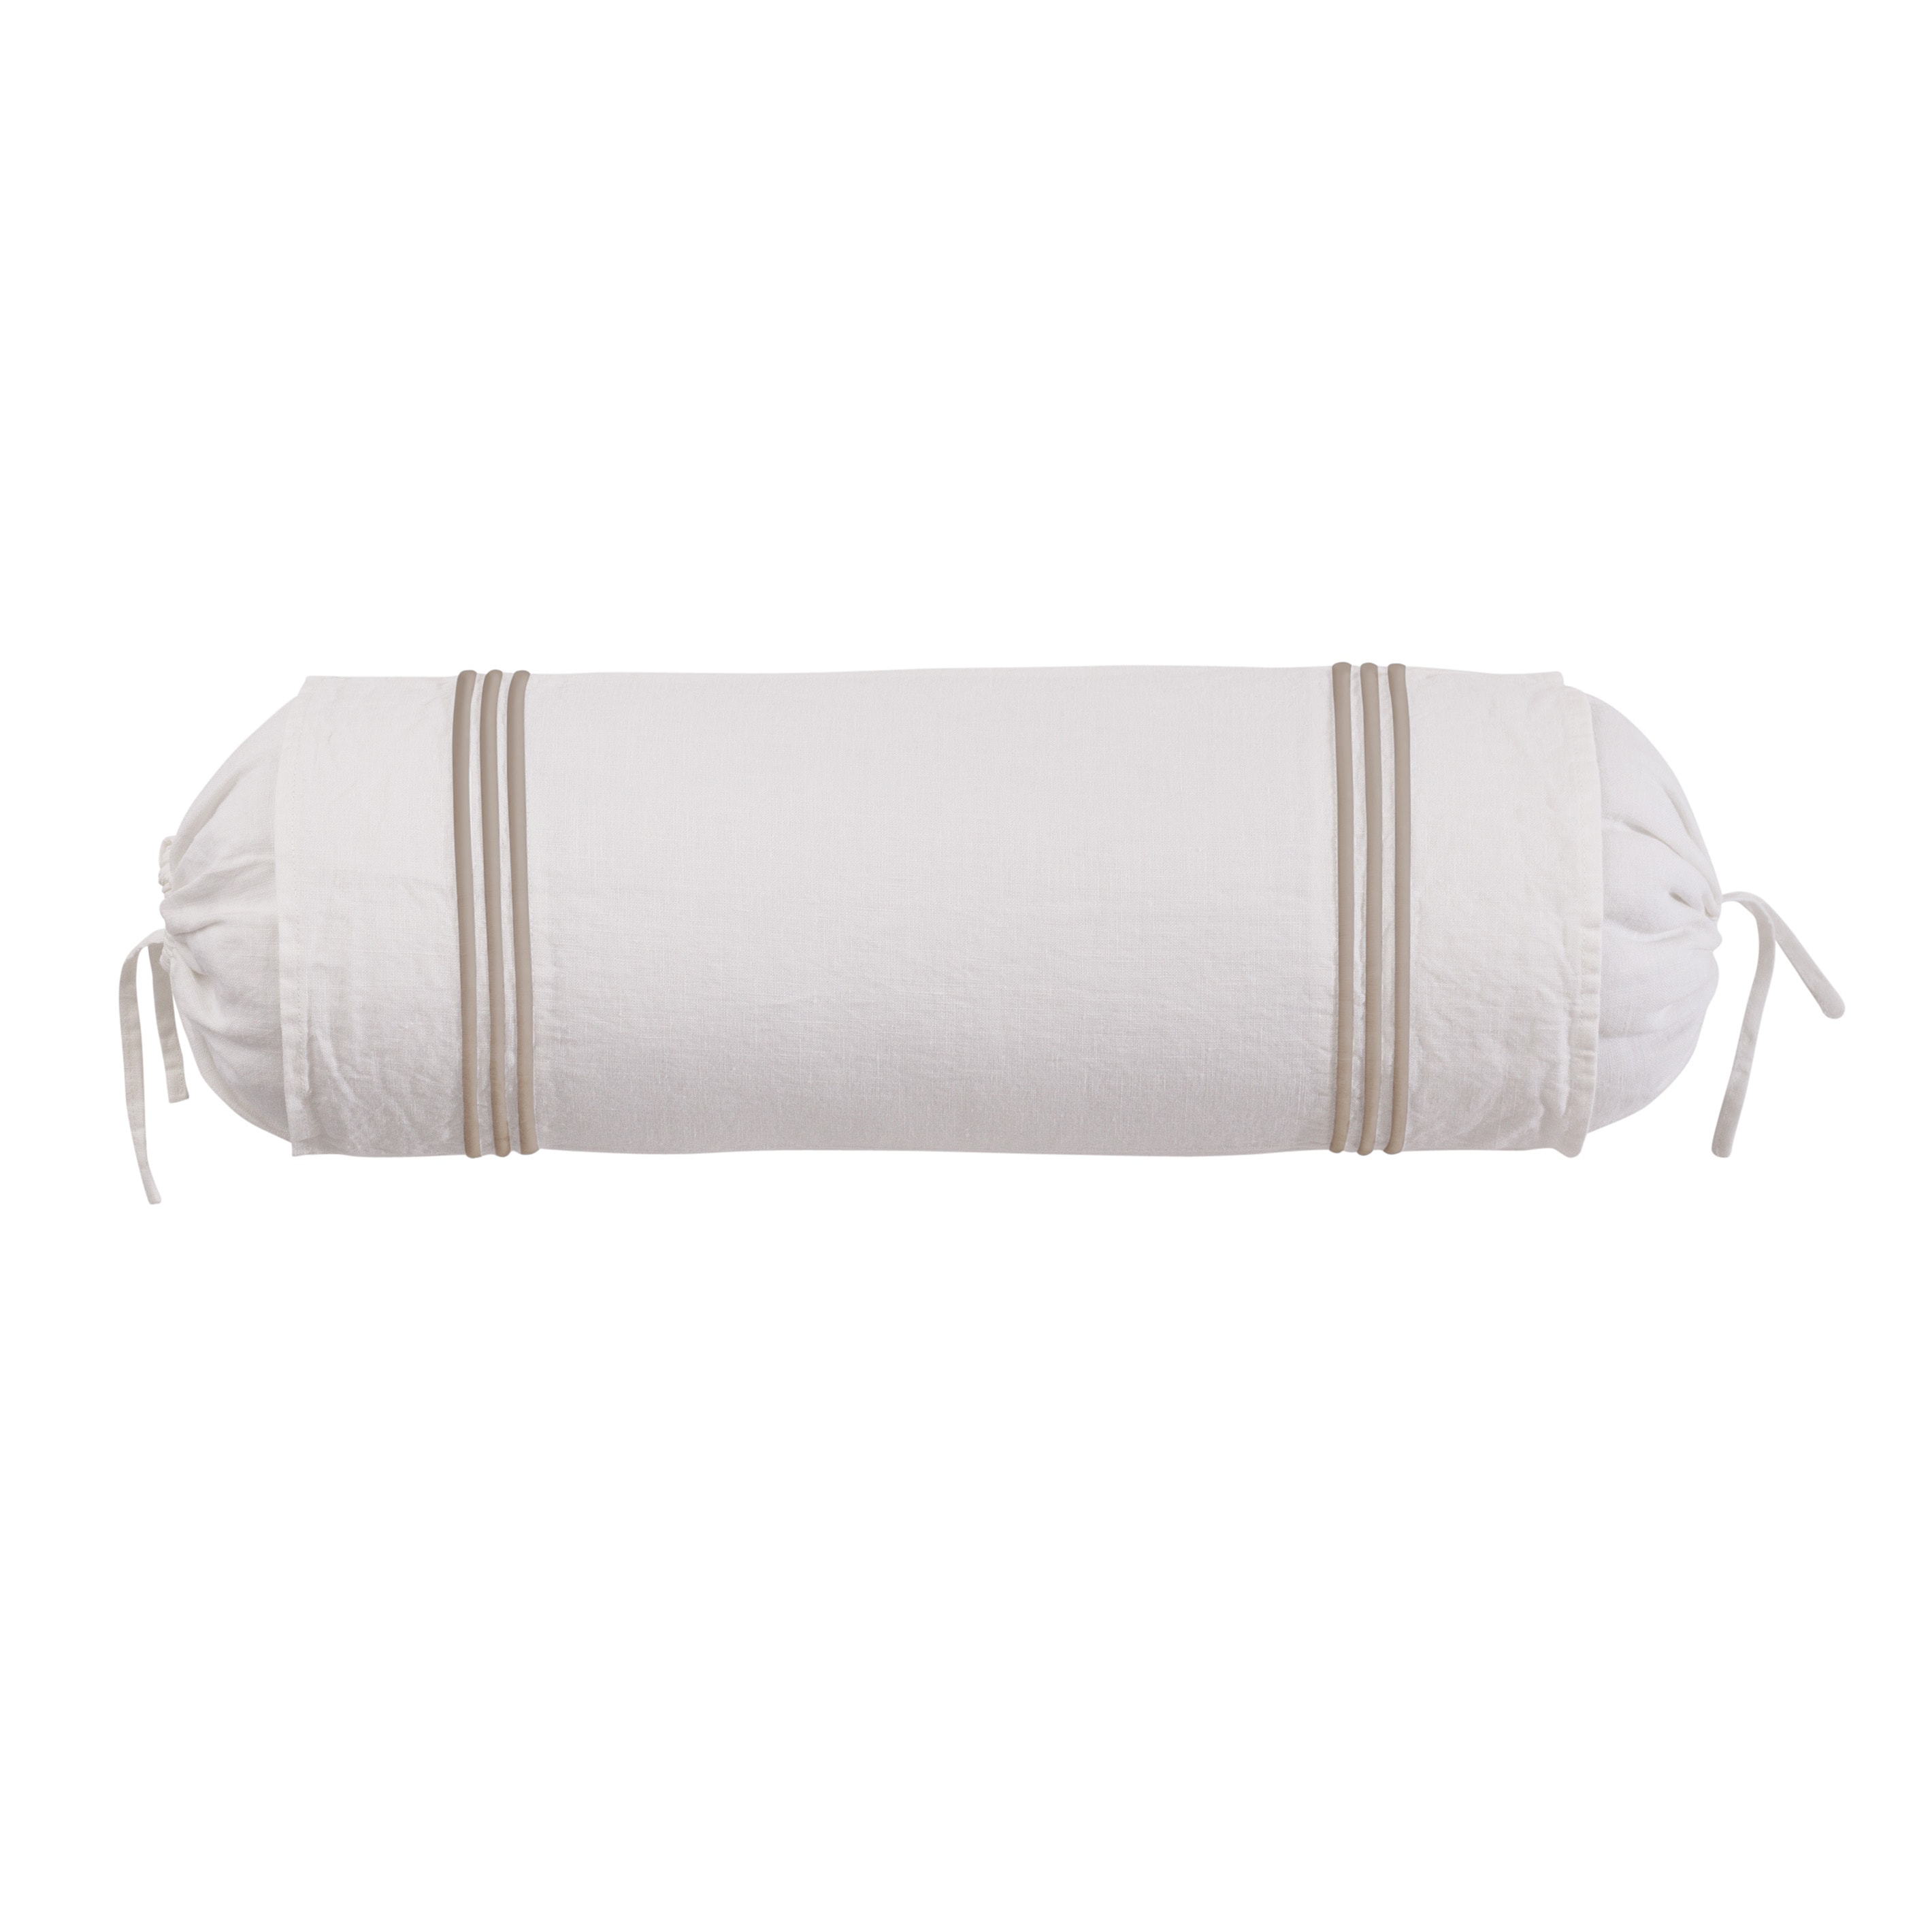 Roxbury Park Baratto Linen Ivory Prairie Neck Roll Decorative Pillow at Sears.com